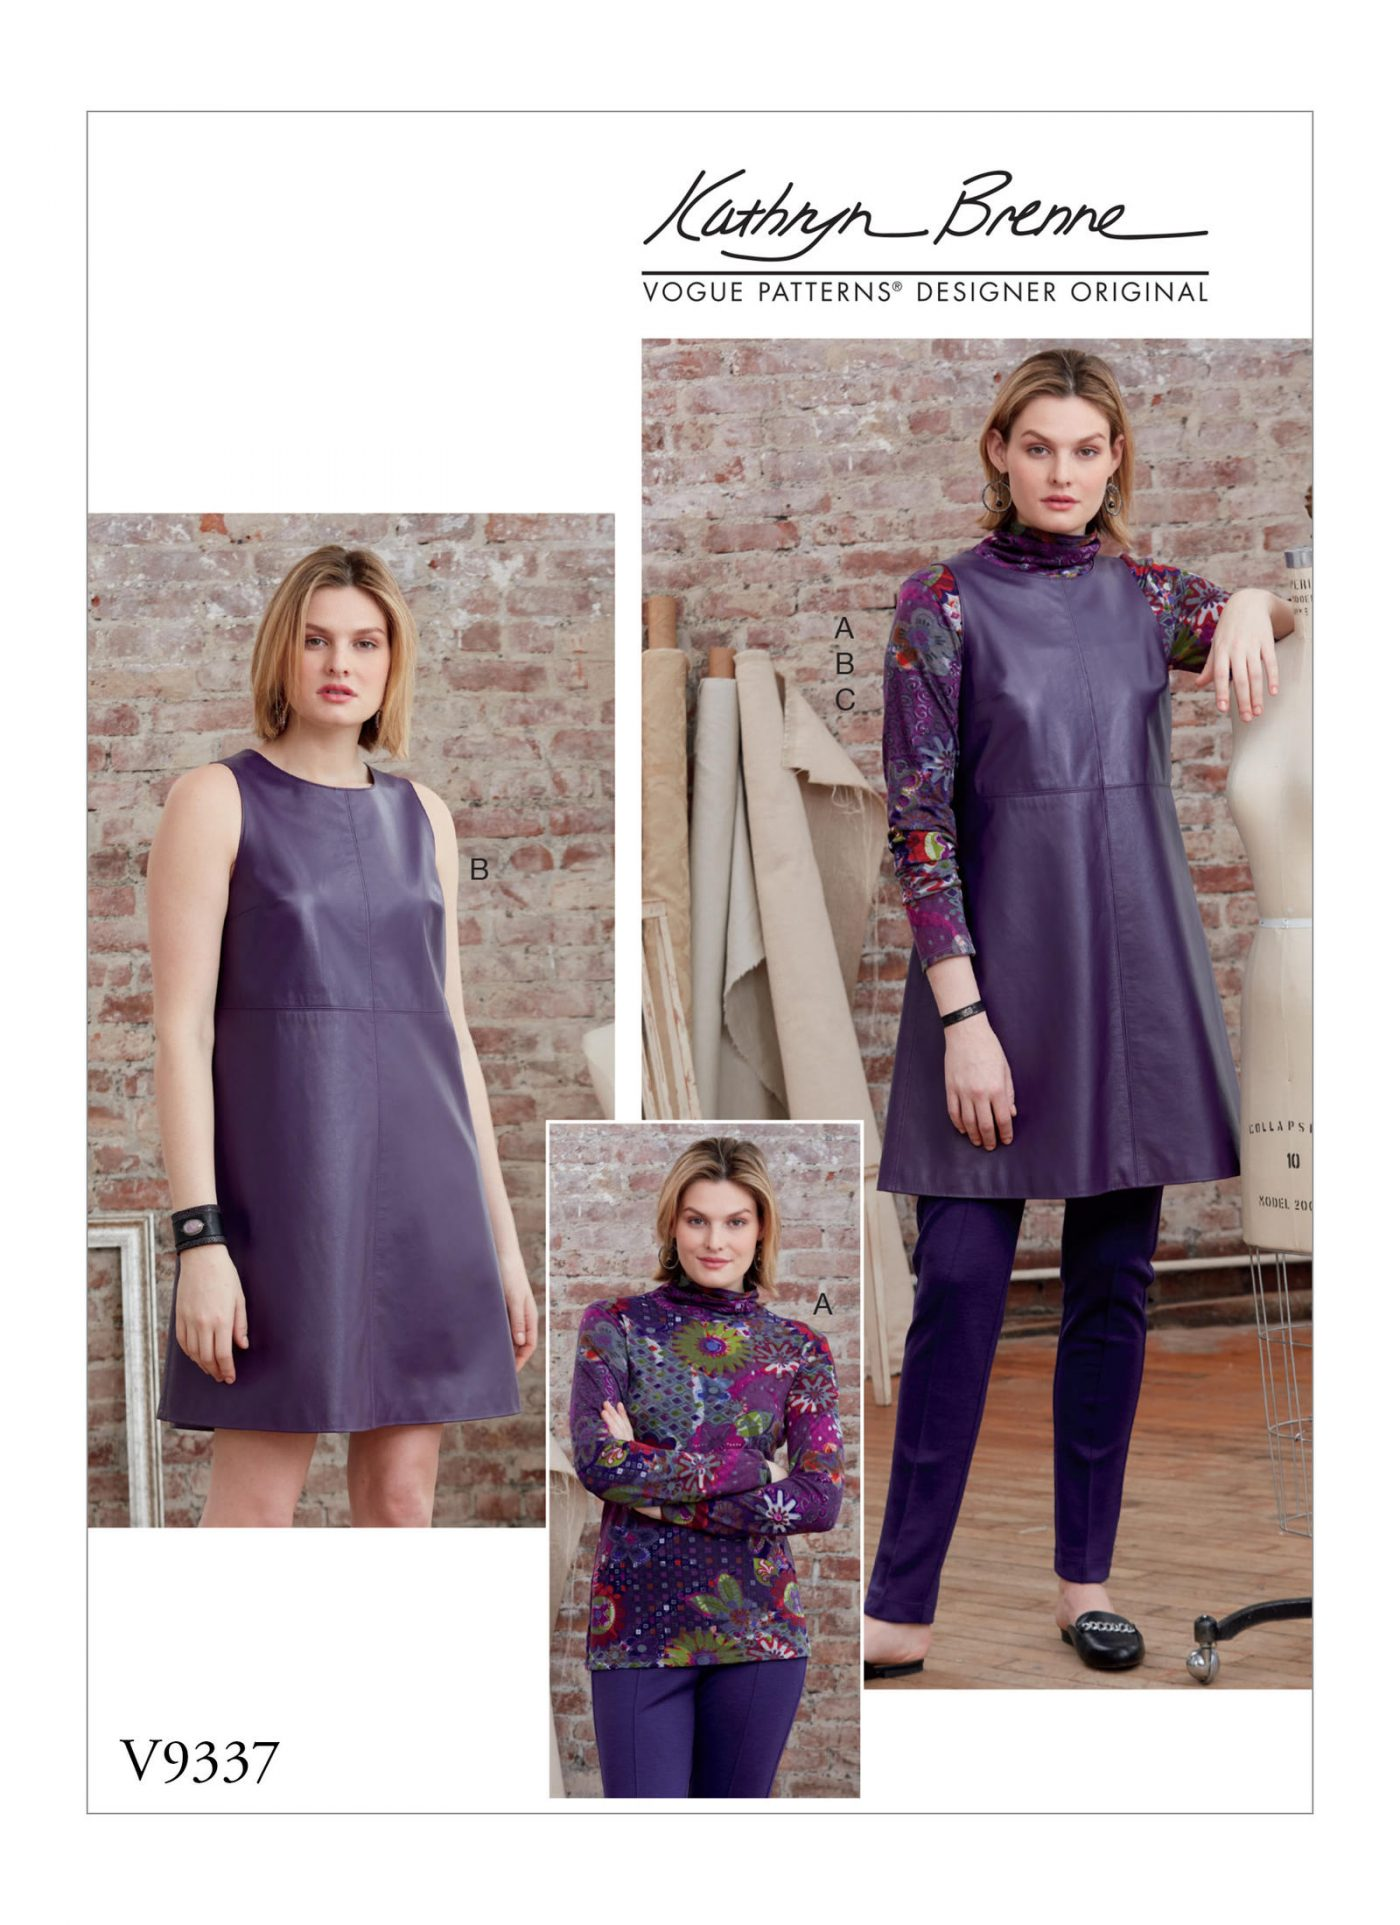 V9337 Autumn/Winter '18 Trends to inspire your sewing